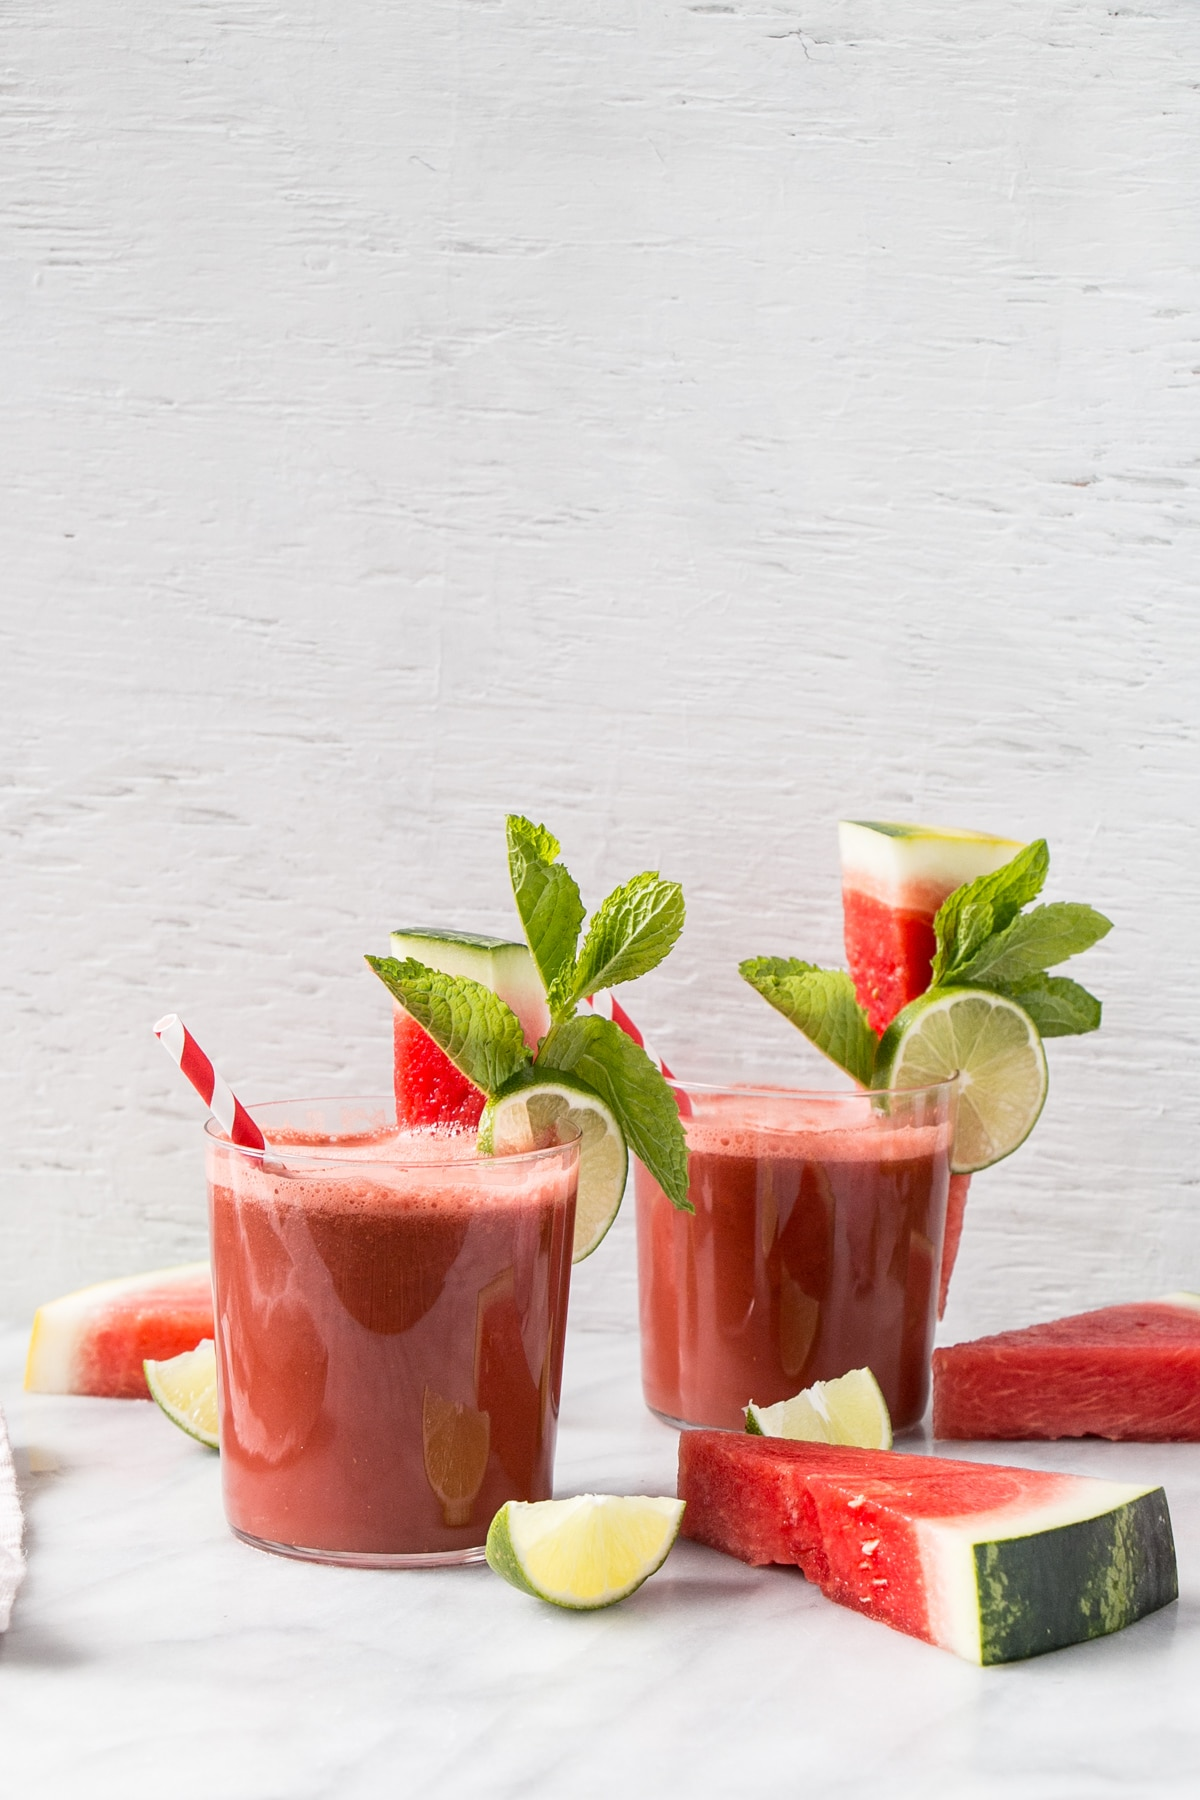 watermelon smoothie with watermelon mint and lime garnishes in glasses